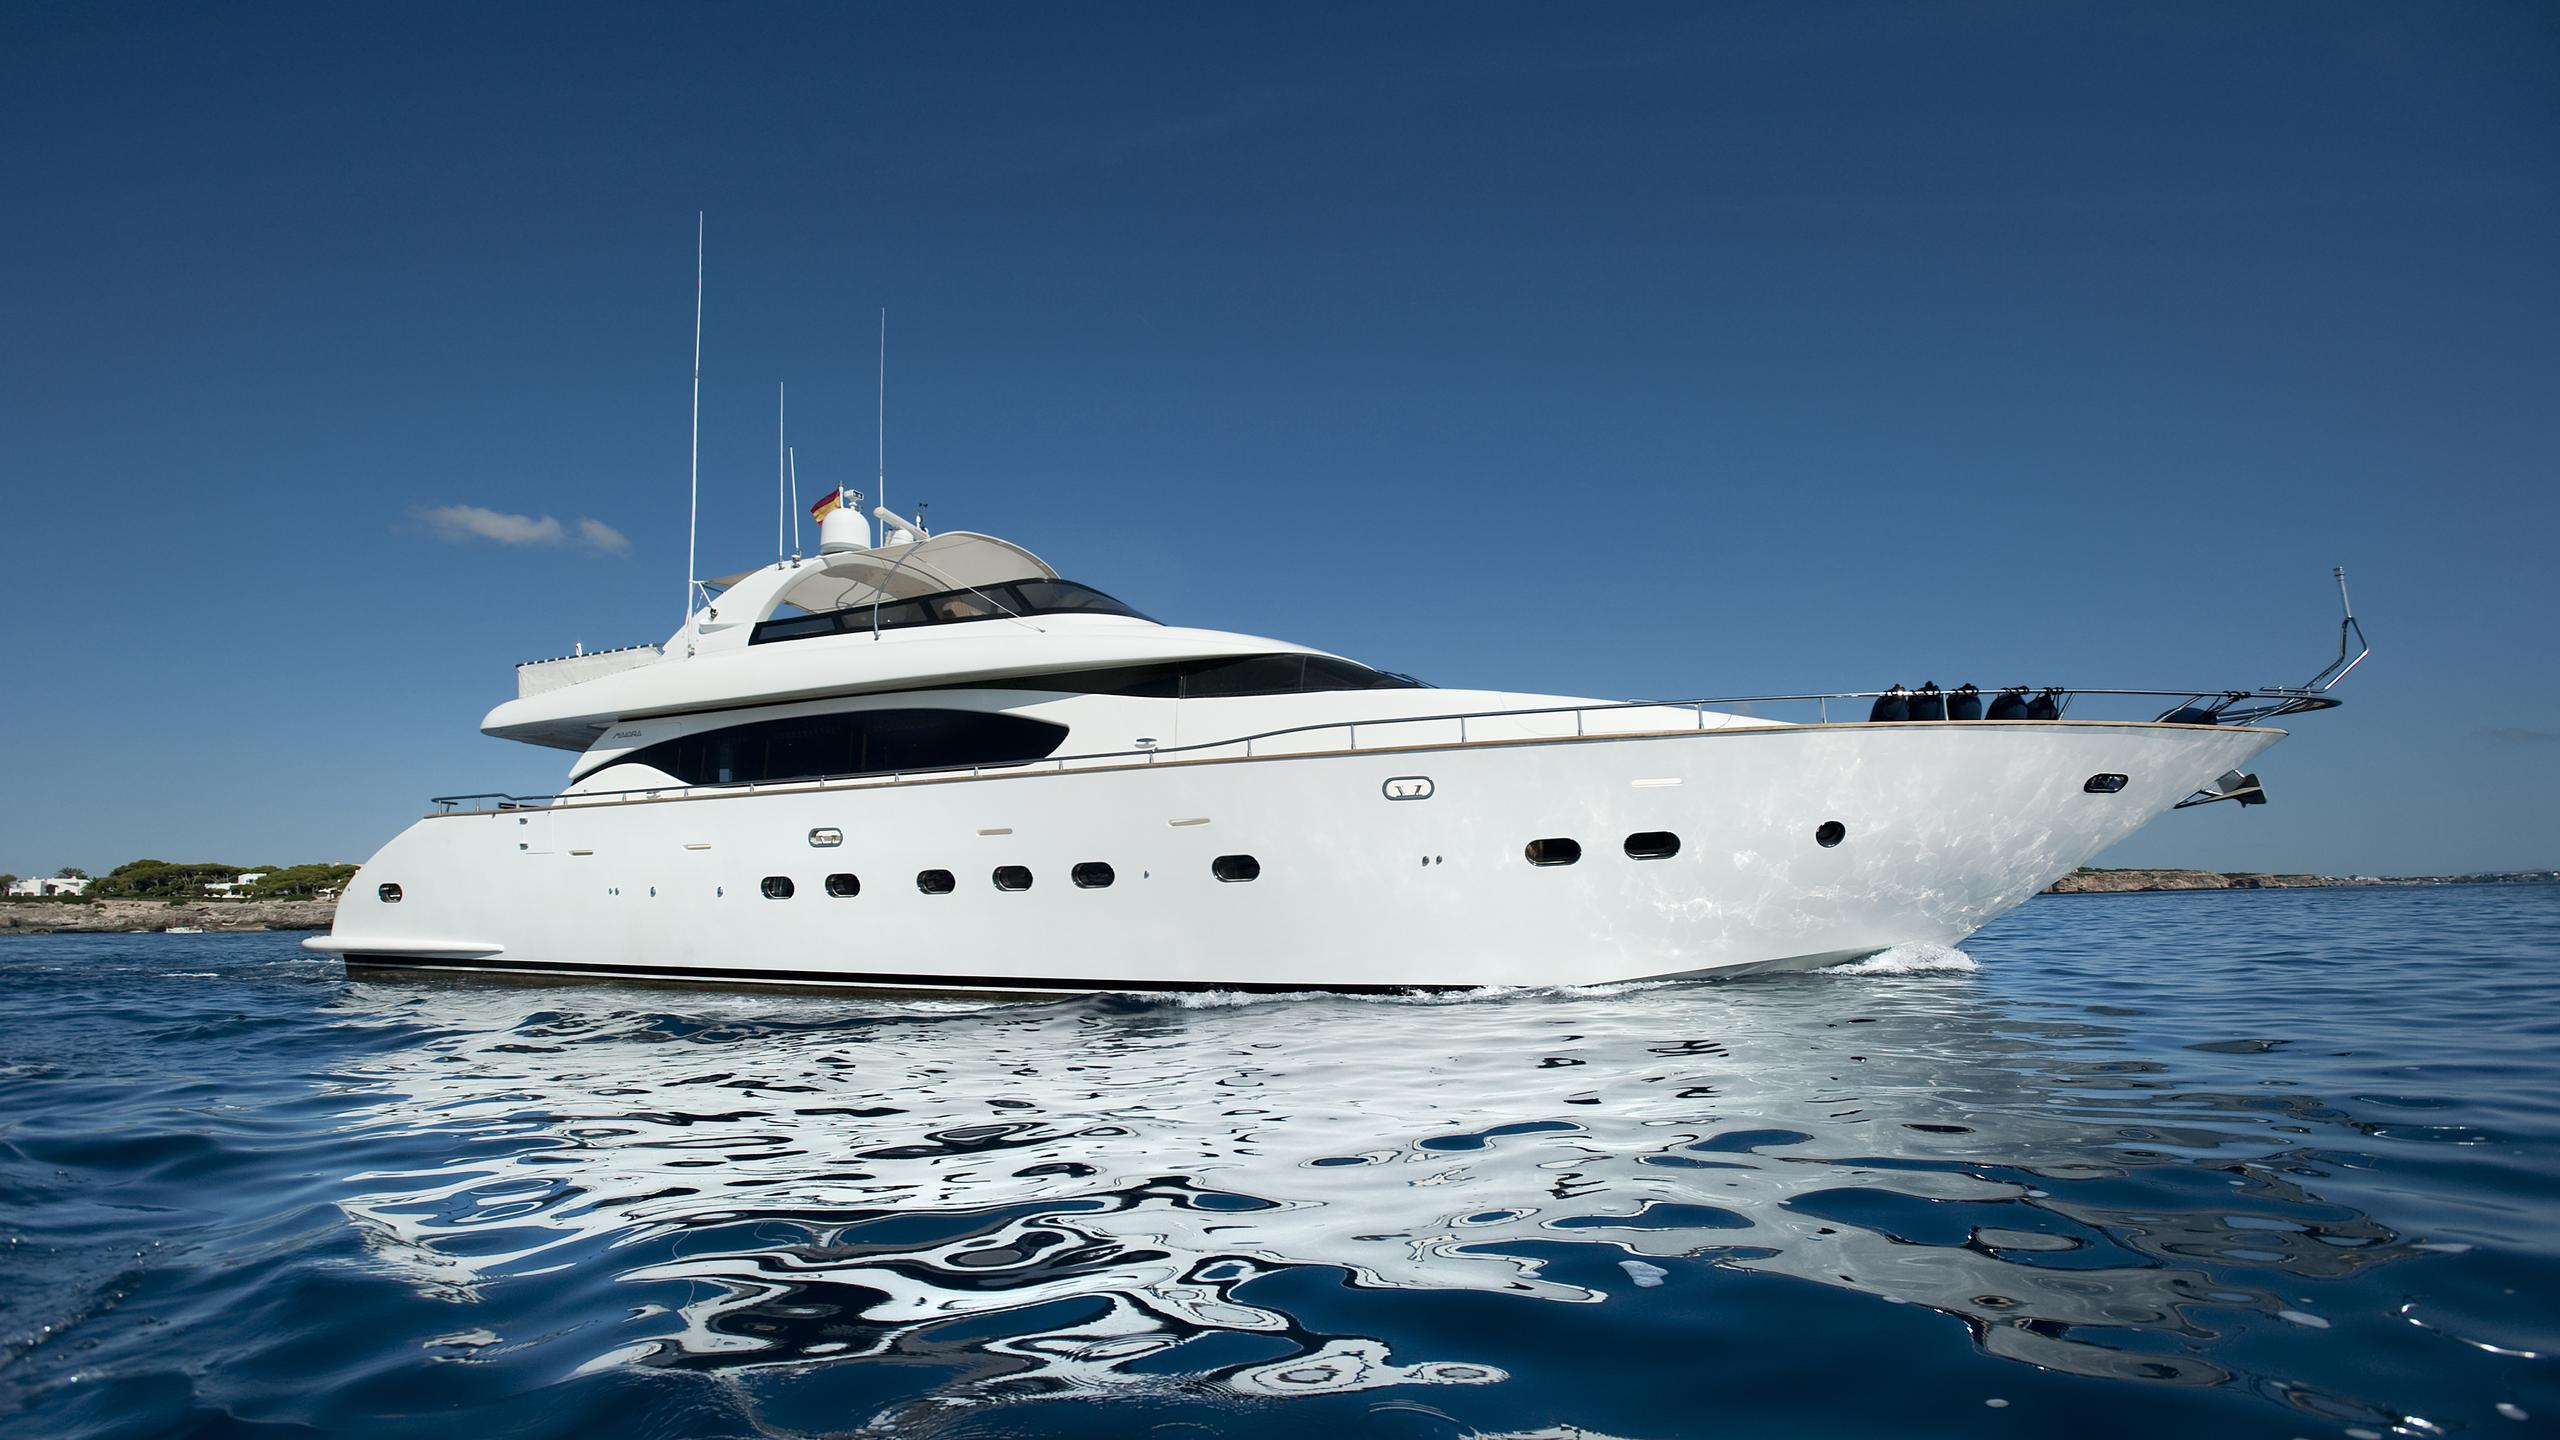 cento-by-excalibur-yacht-for-sale-profile